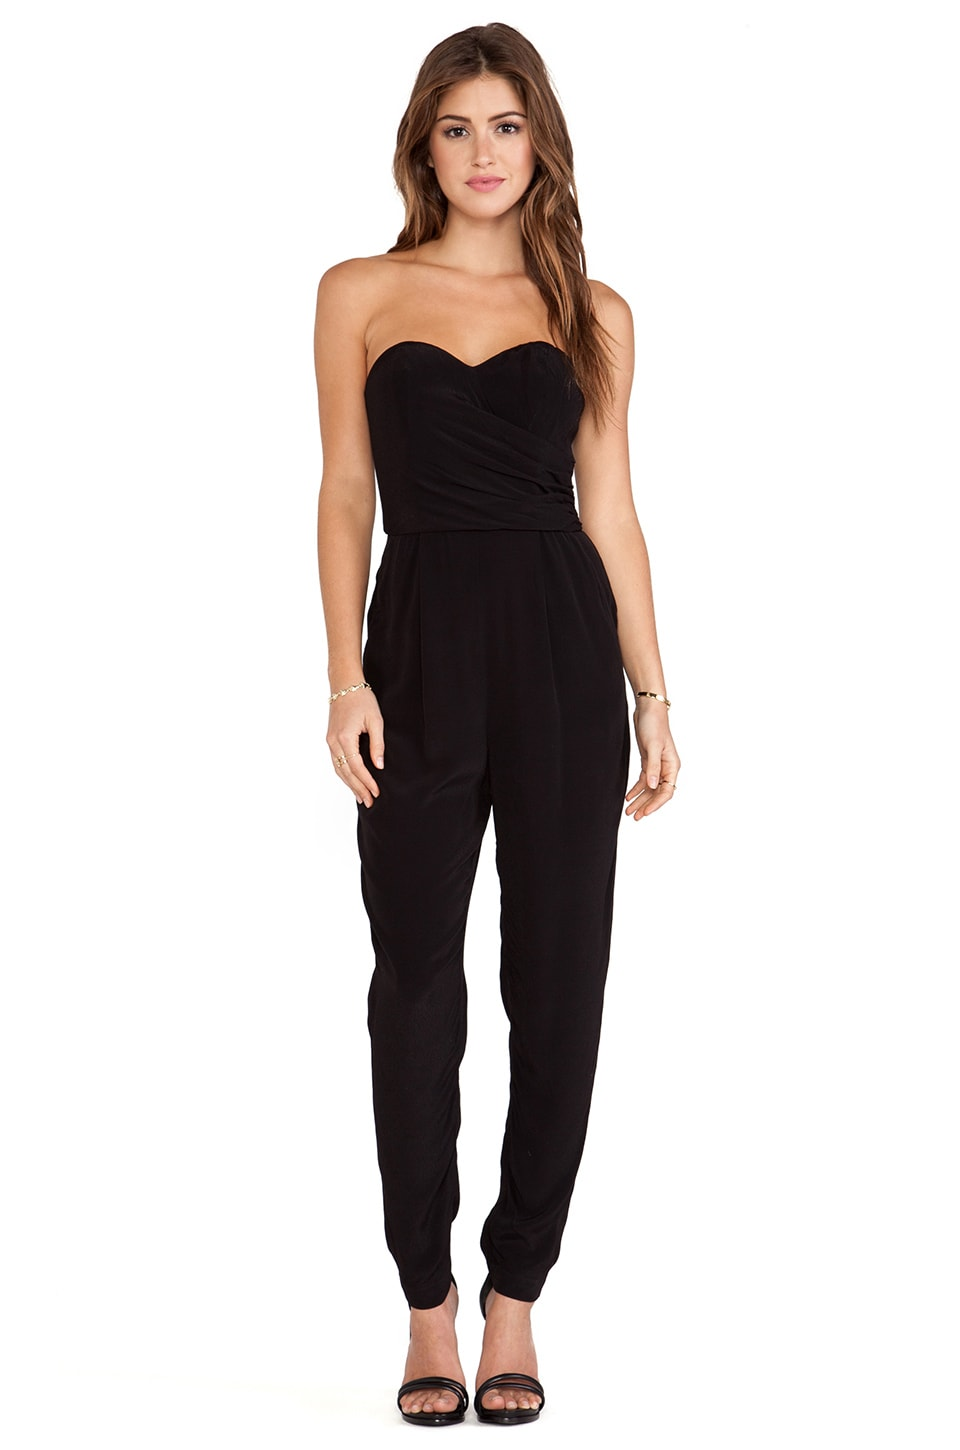 Wish Equal Jumpsuit in Black